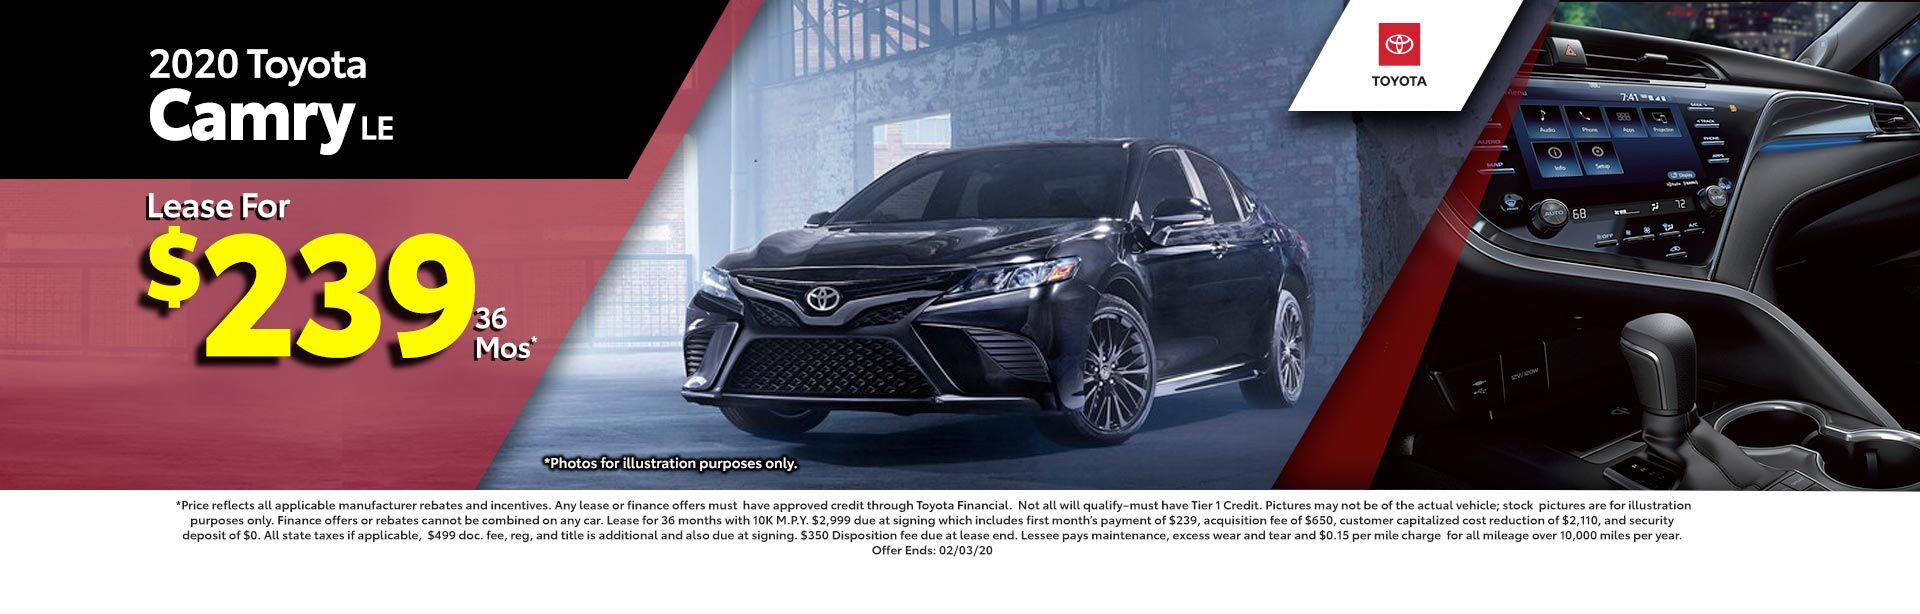 2019 Toyota Camry LE Special at McGee Toyota of Epping